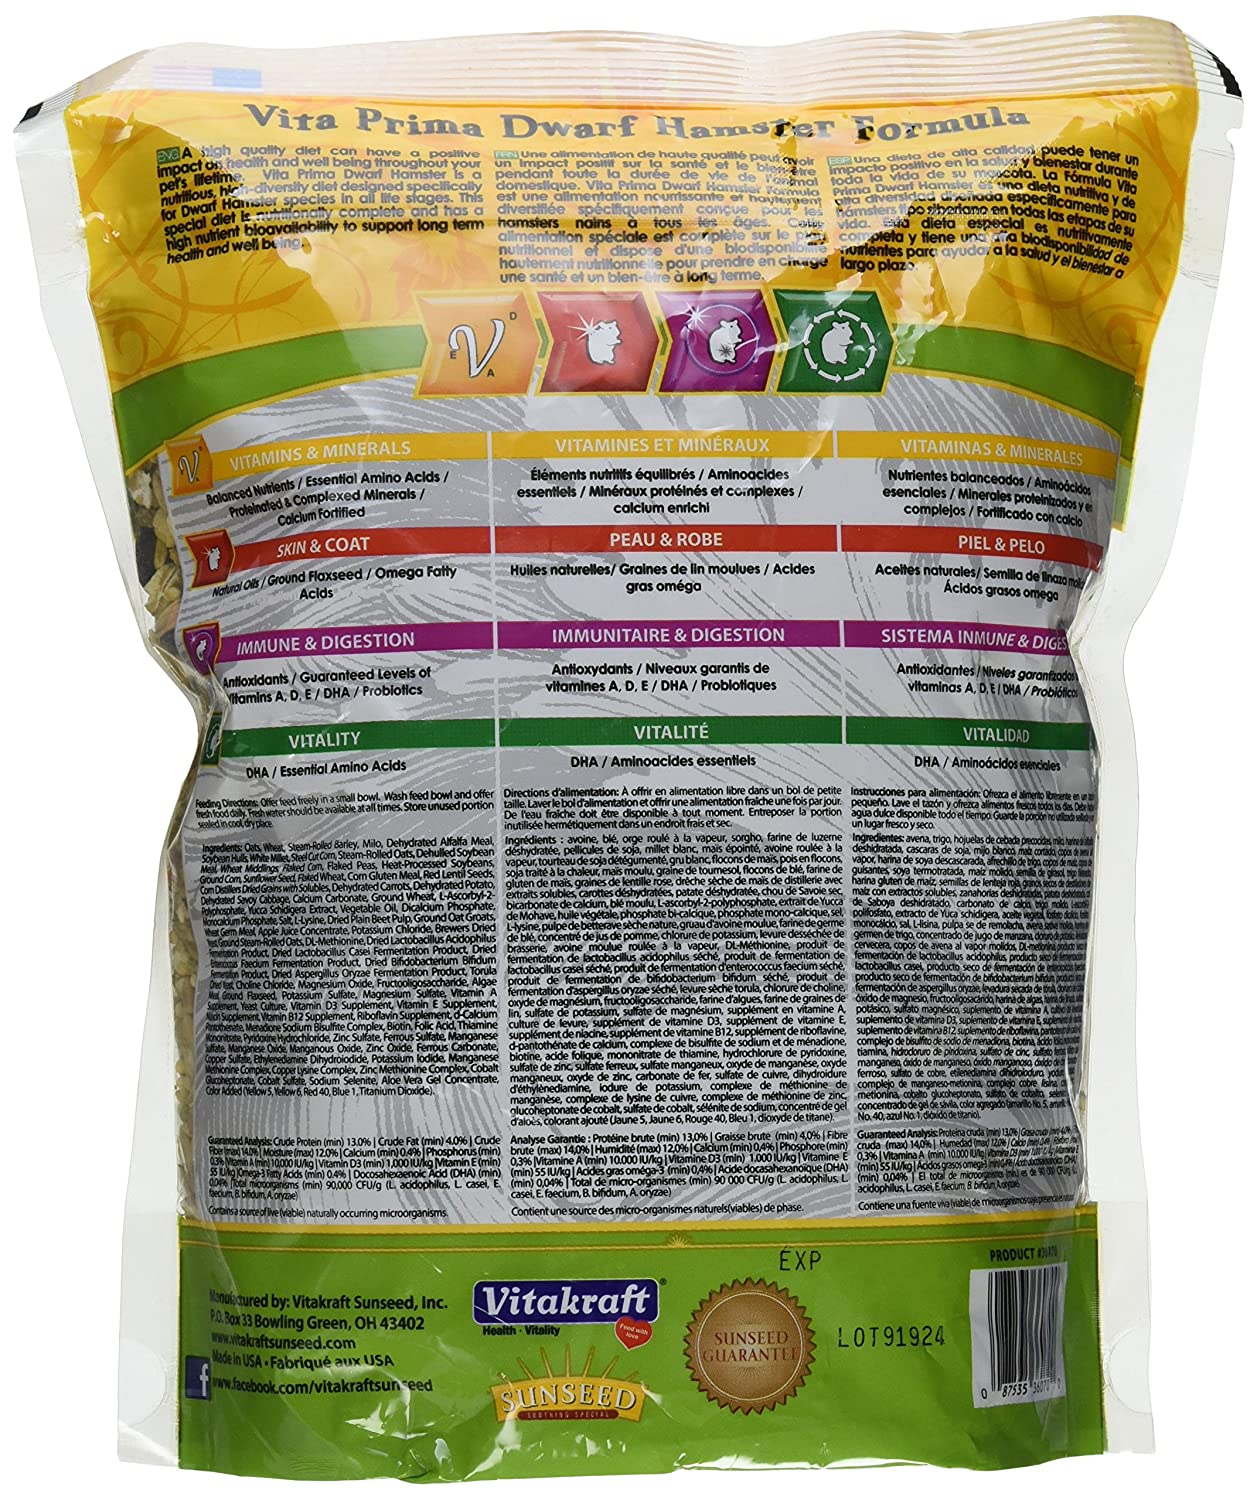 Amazon.com : SUNSEED Vita Prima Sunscription Dwarf Hamster Food, High-Variety Formula - 2 LBS Size : Pet Food : Pet Supplies